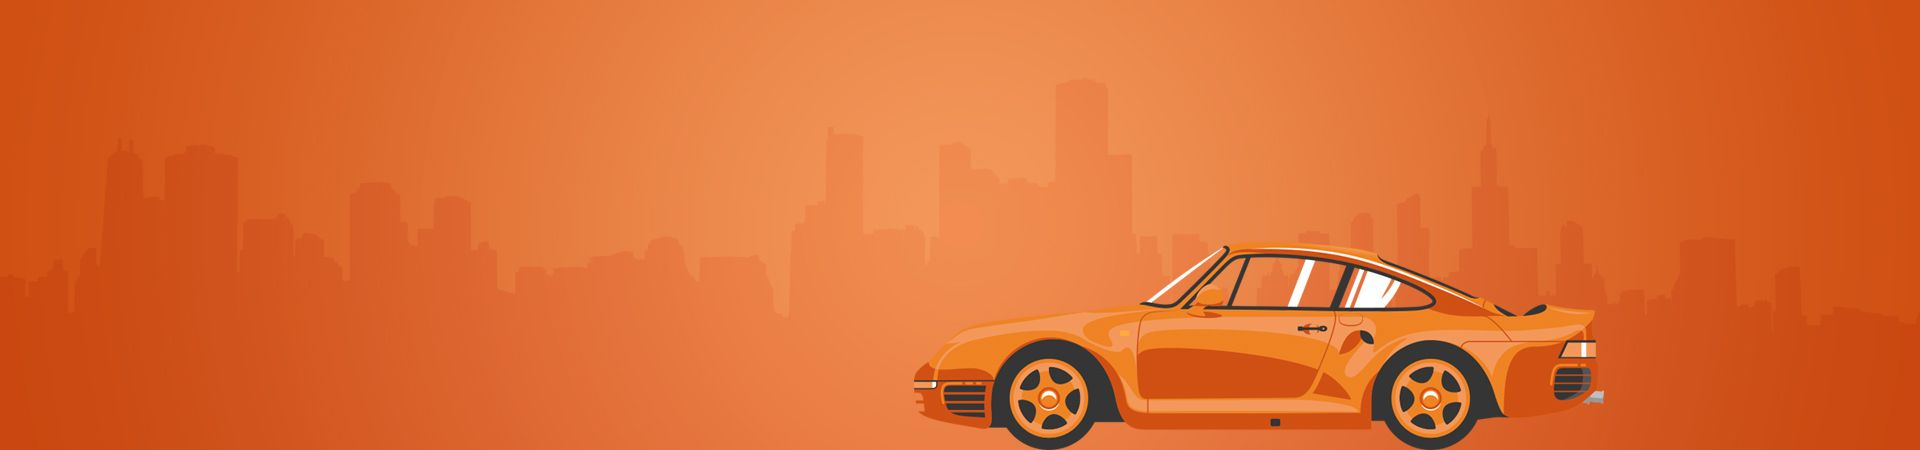 Orange Vintage Car Background